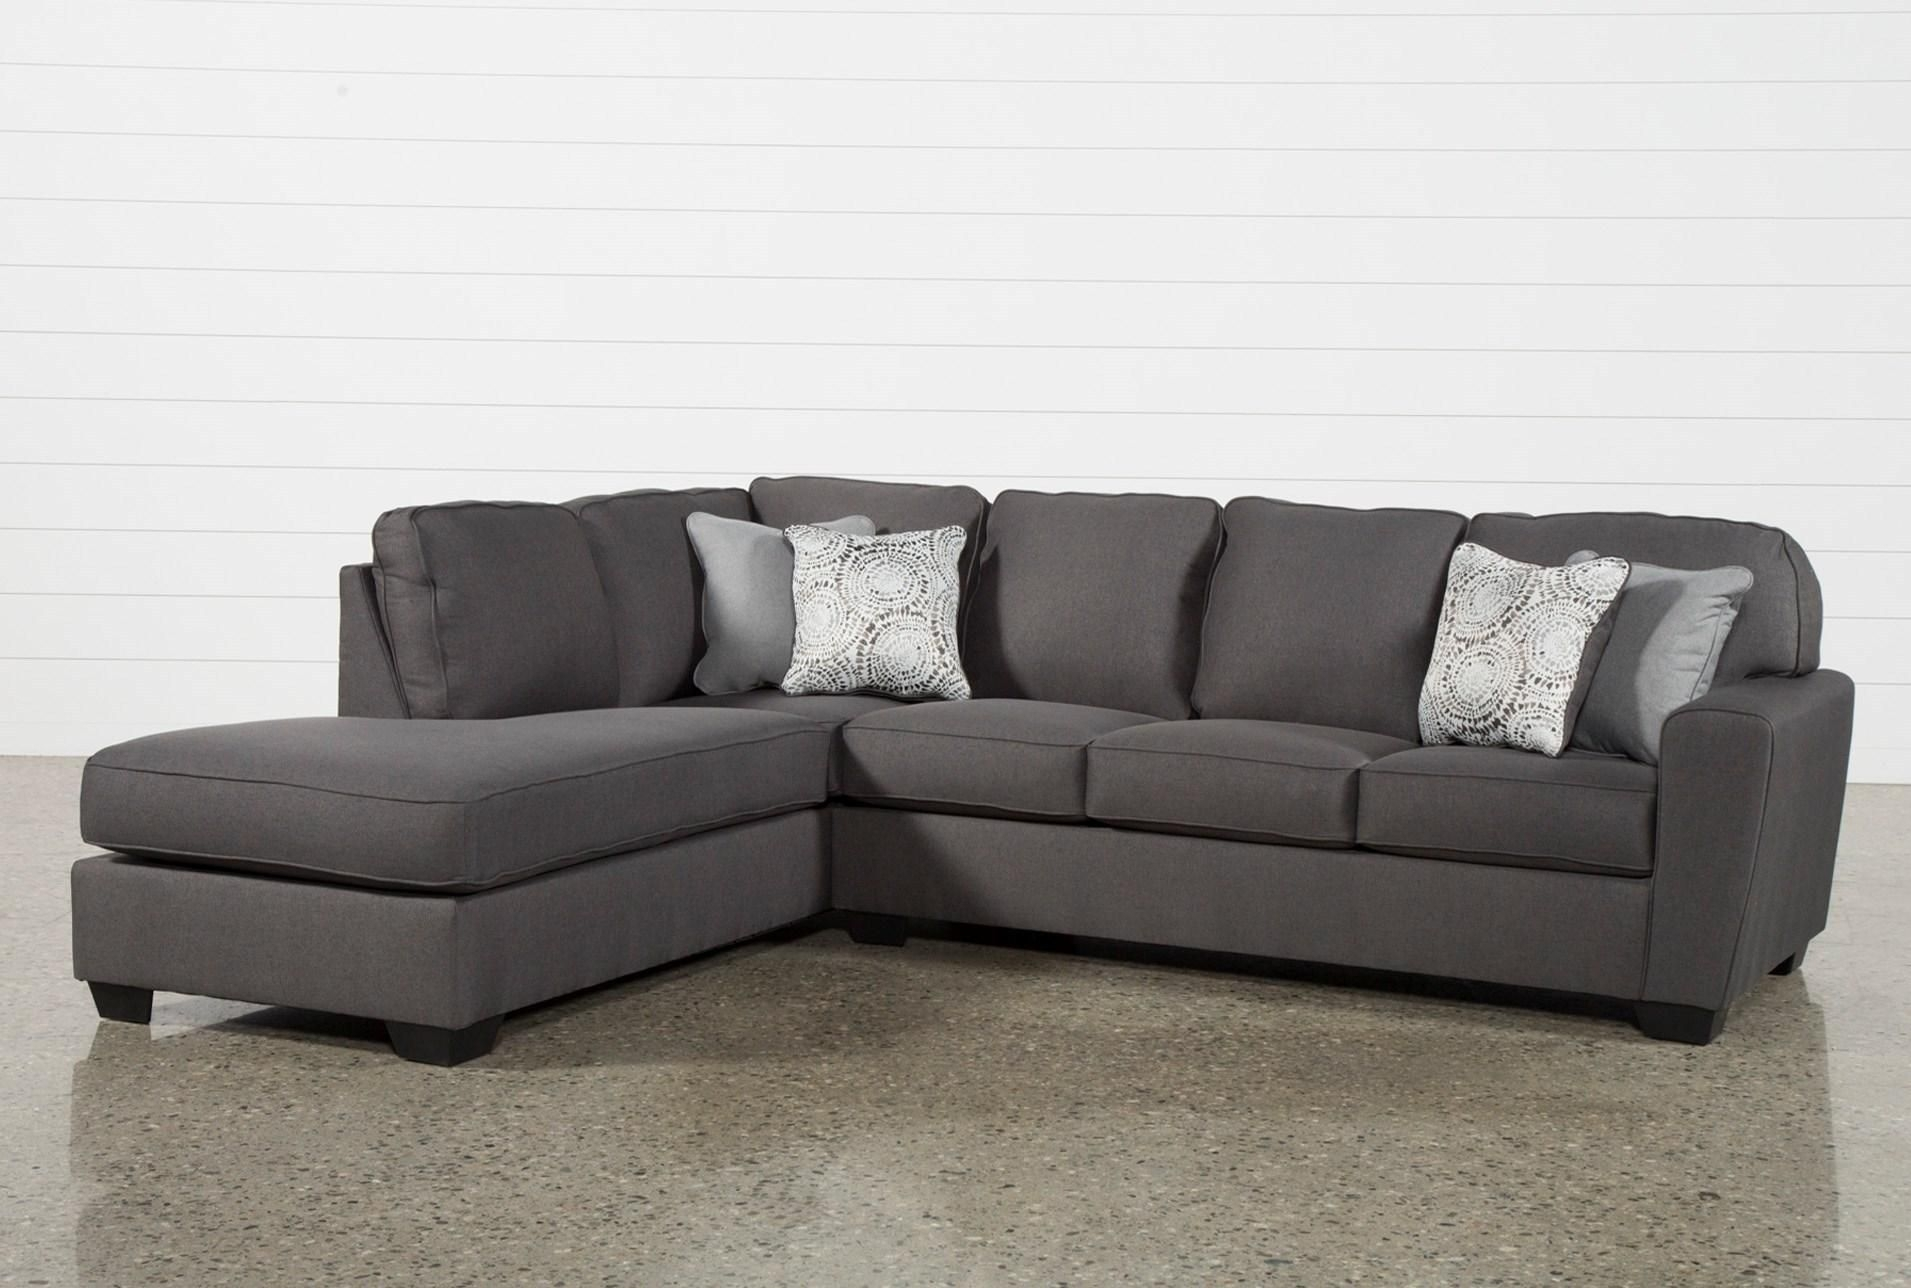 Mcdade Graphite 2 Piece Sectional W/laf Chaise | Graphite, Living With Josephine 2 Piece Sectionals With Raf Sofa (Image 17 of 25)